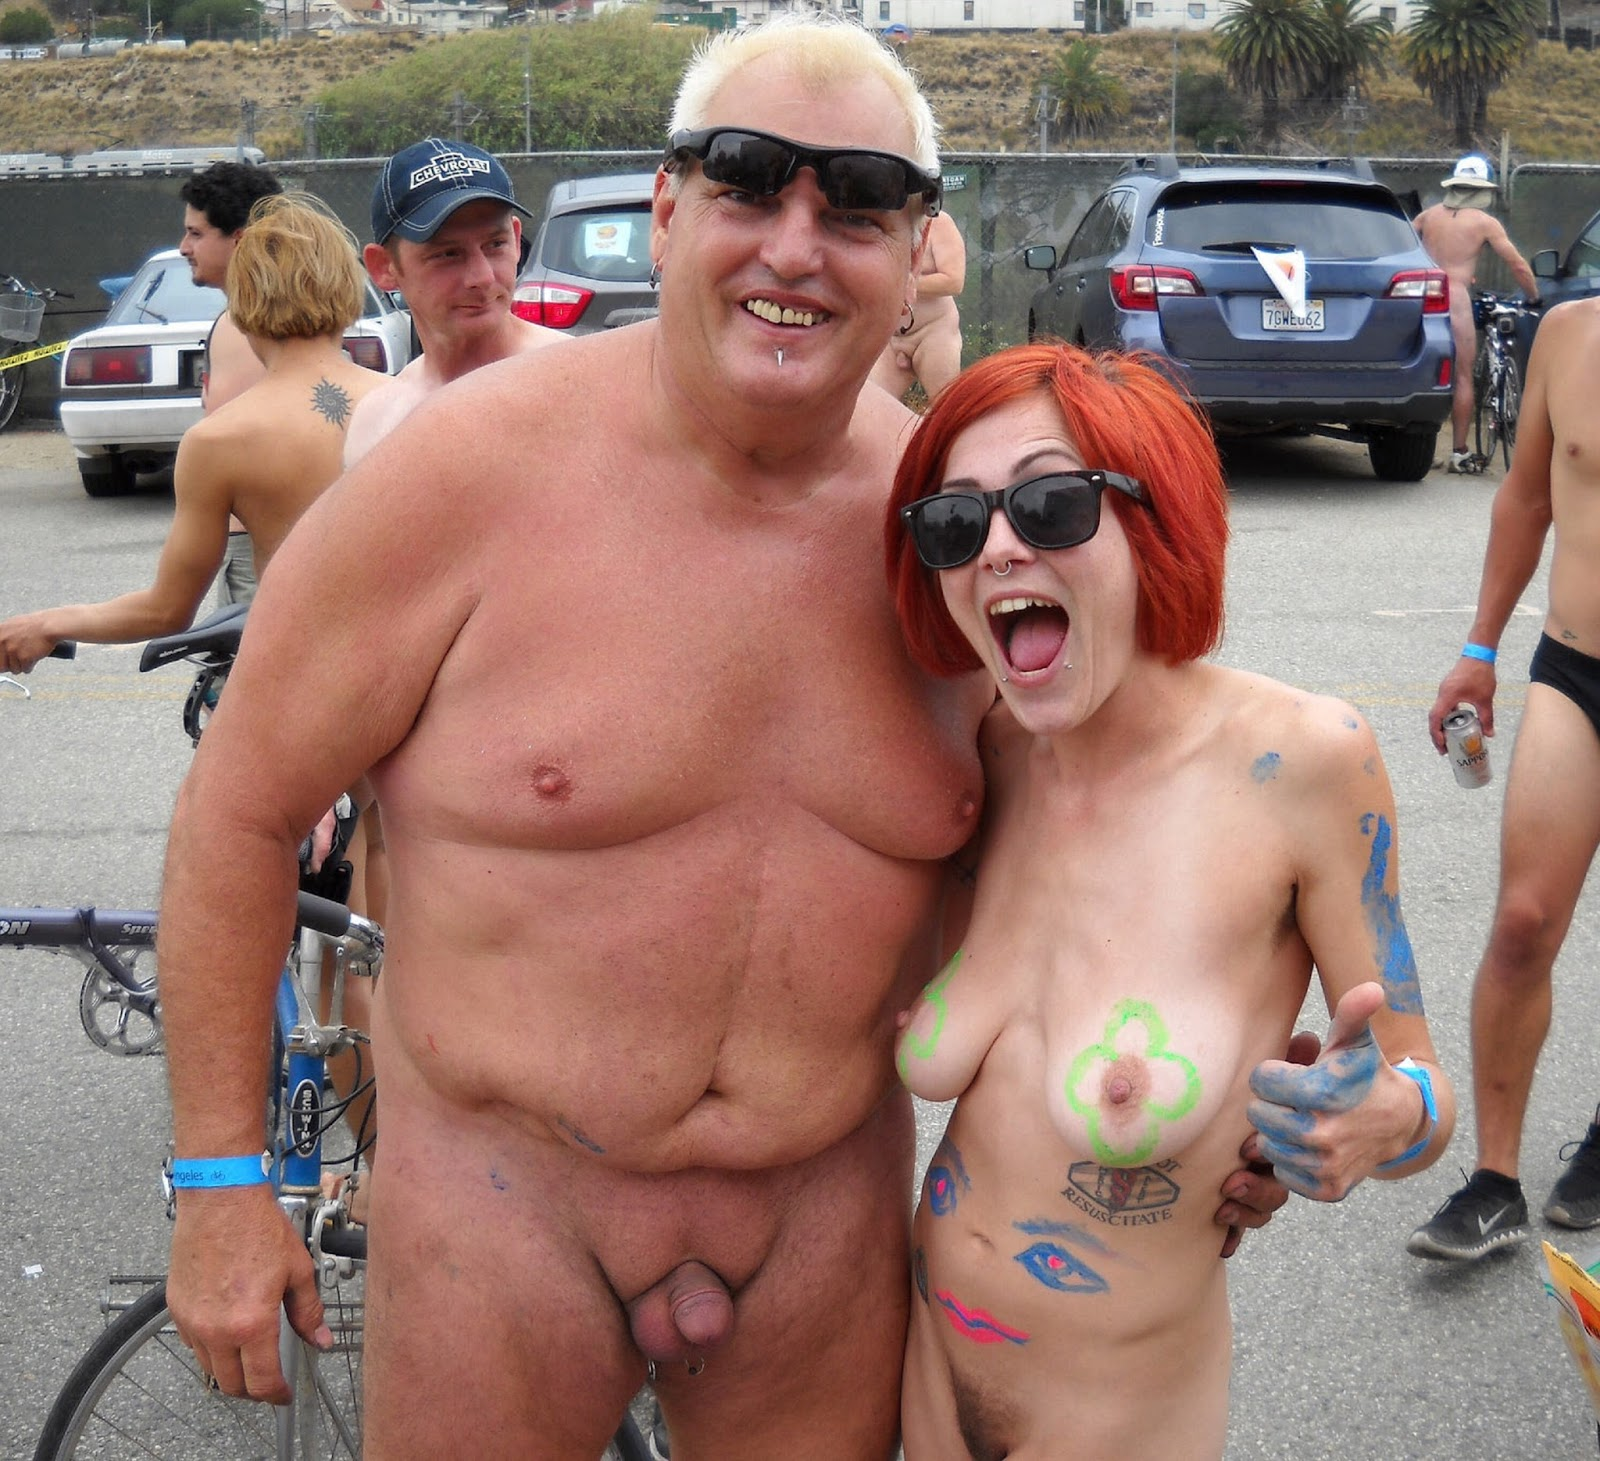 Remarkable, rather monster cock sex pics remarkable